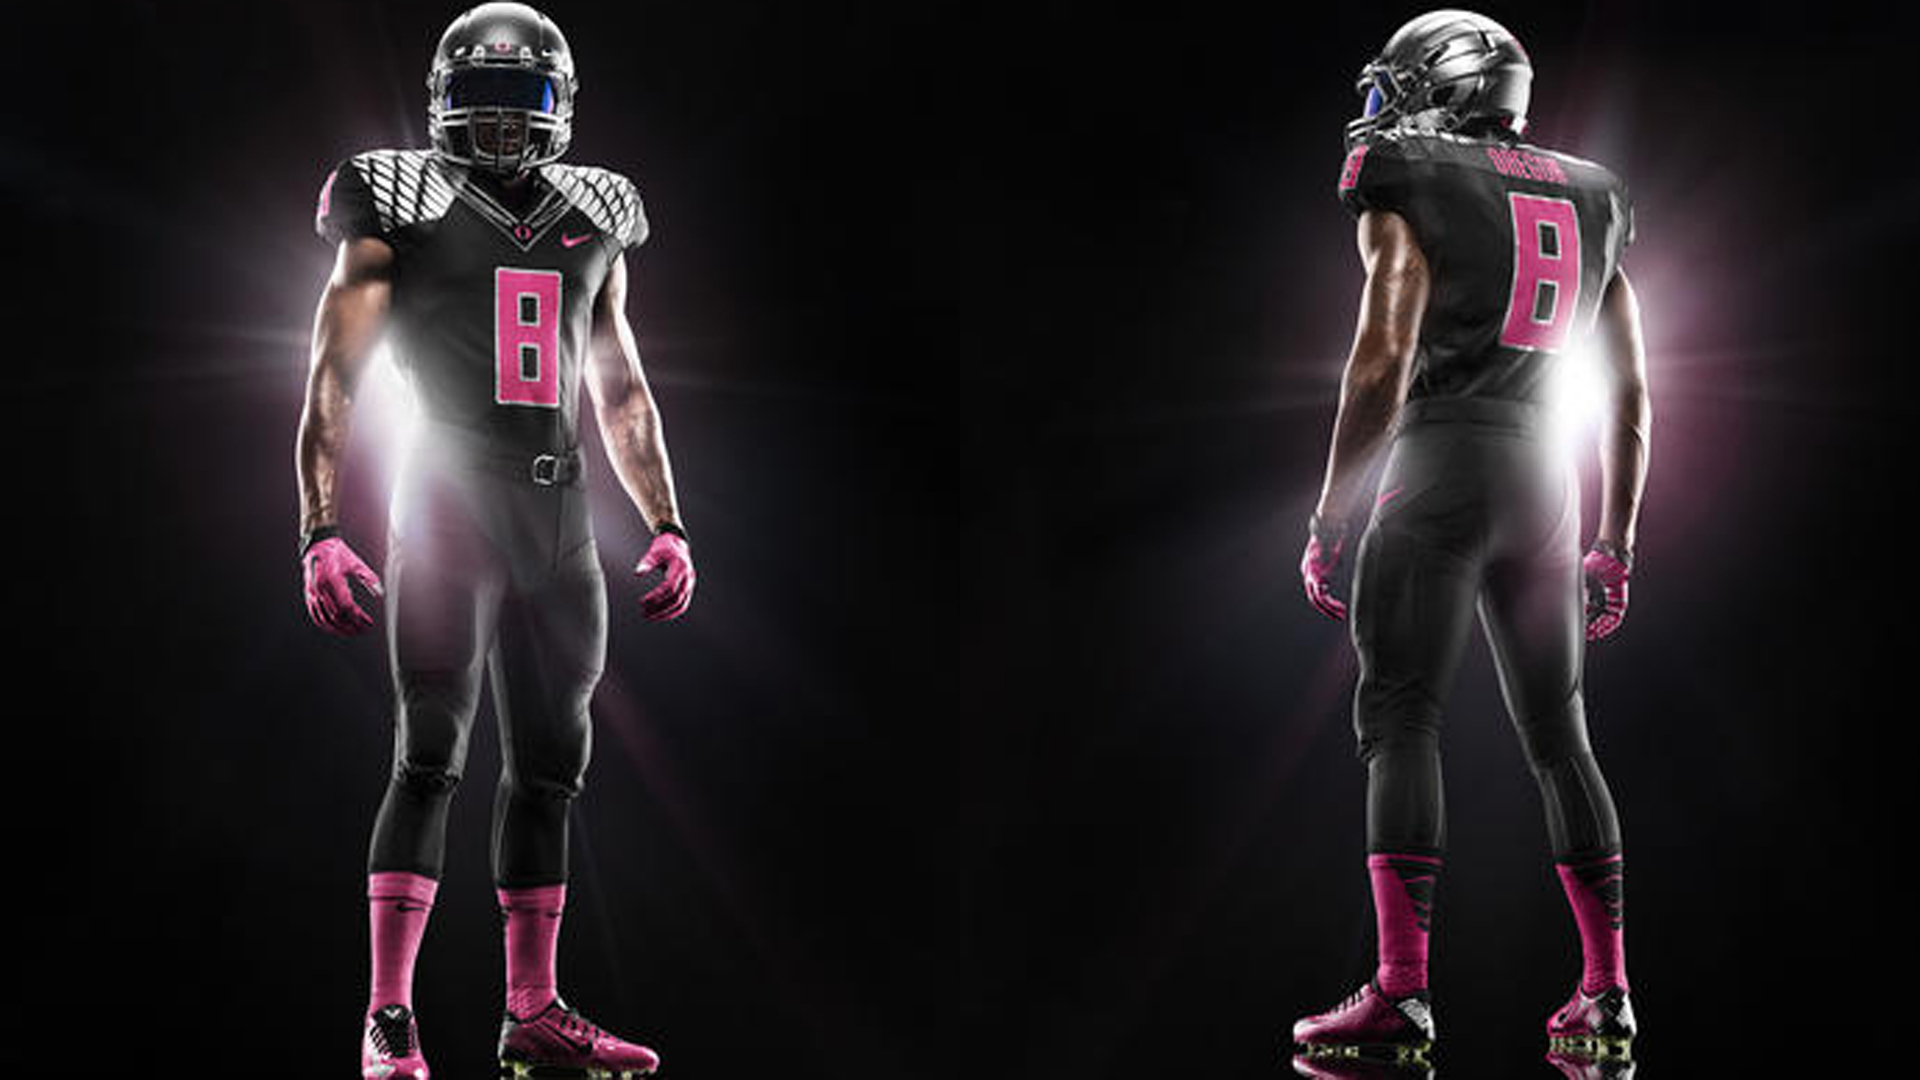 See Oregons Pink Uniforms For Breast Cancer Awareness